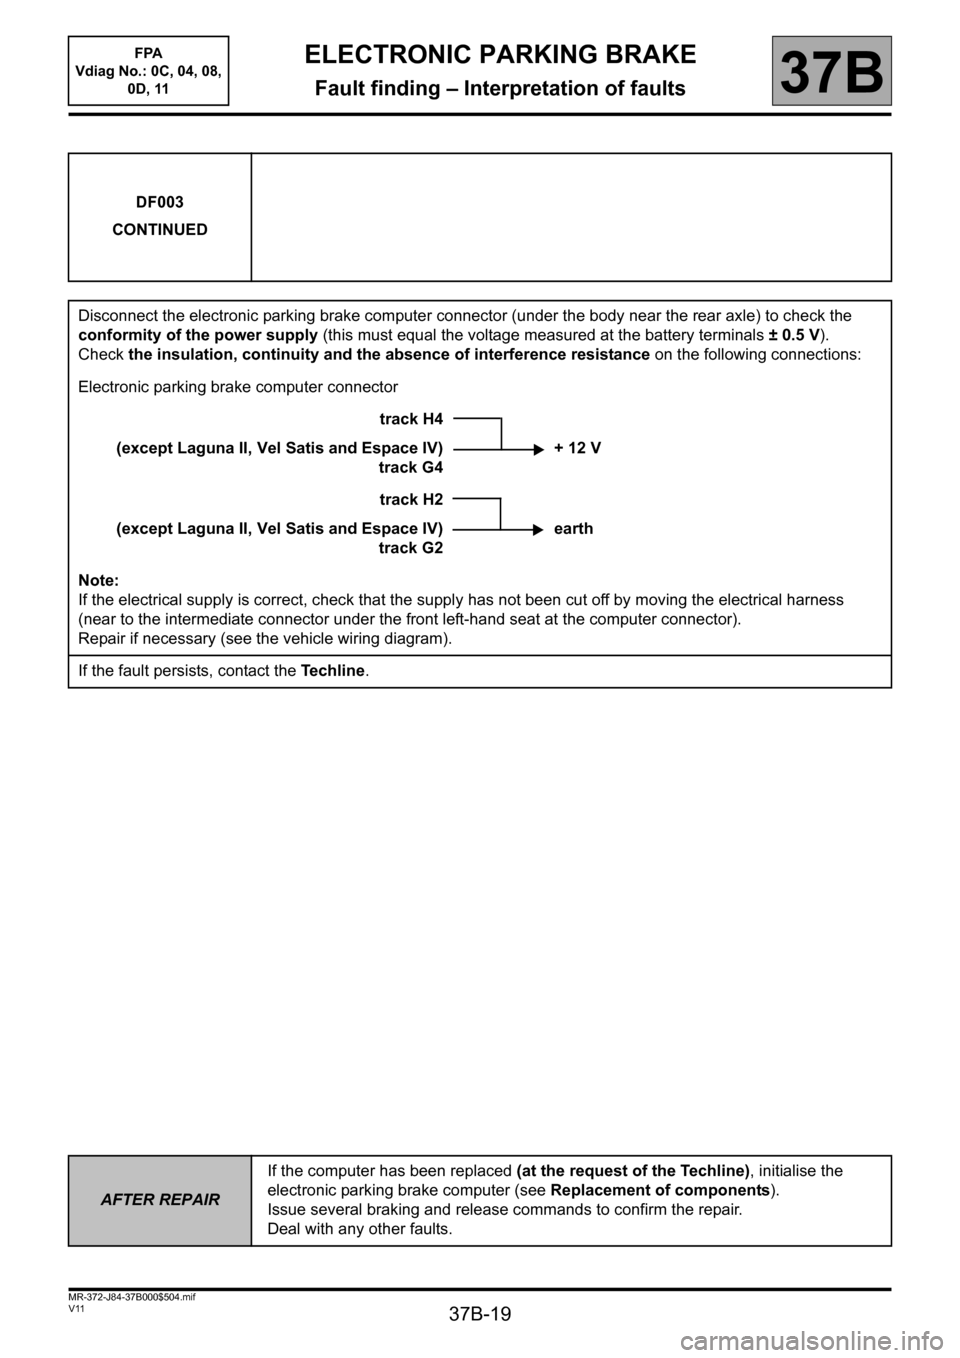 RENAULT SCENIC 2013 J95 / 3.G Electronic Parking Brake Workshop Manual, Page 19